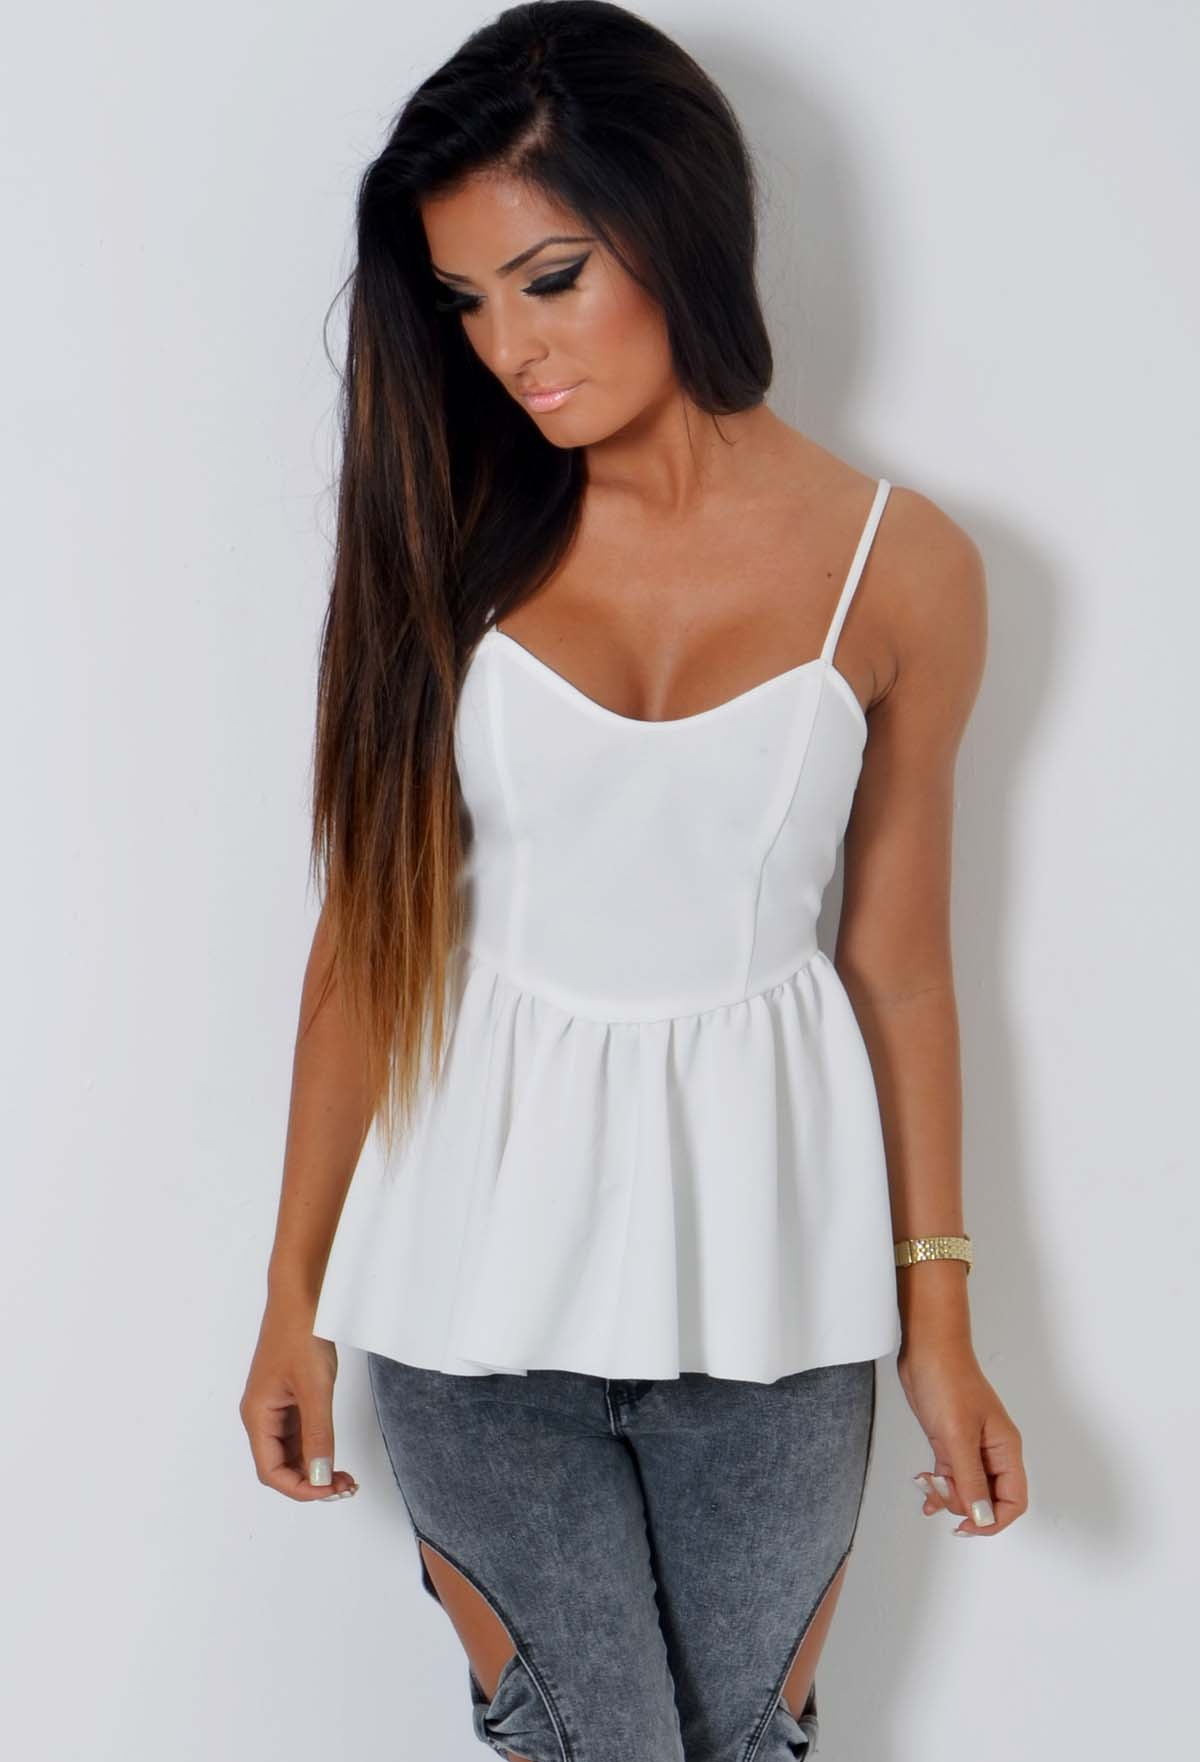 Frida White Textured Peplum Frill Panel Top | Pink Boutique